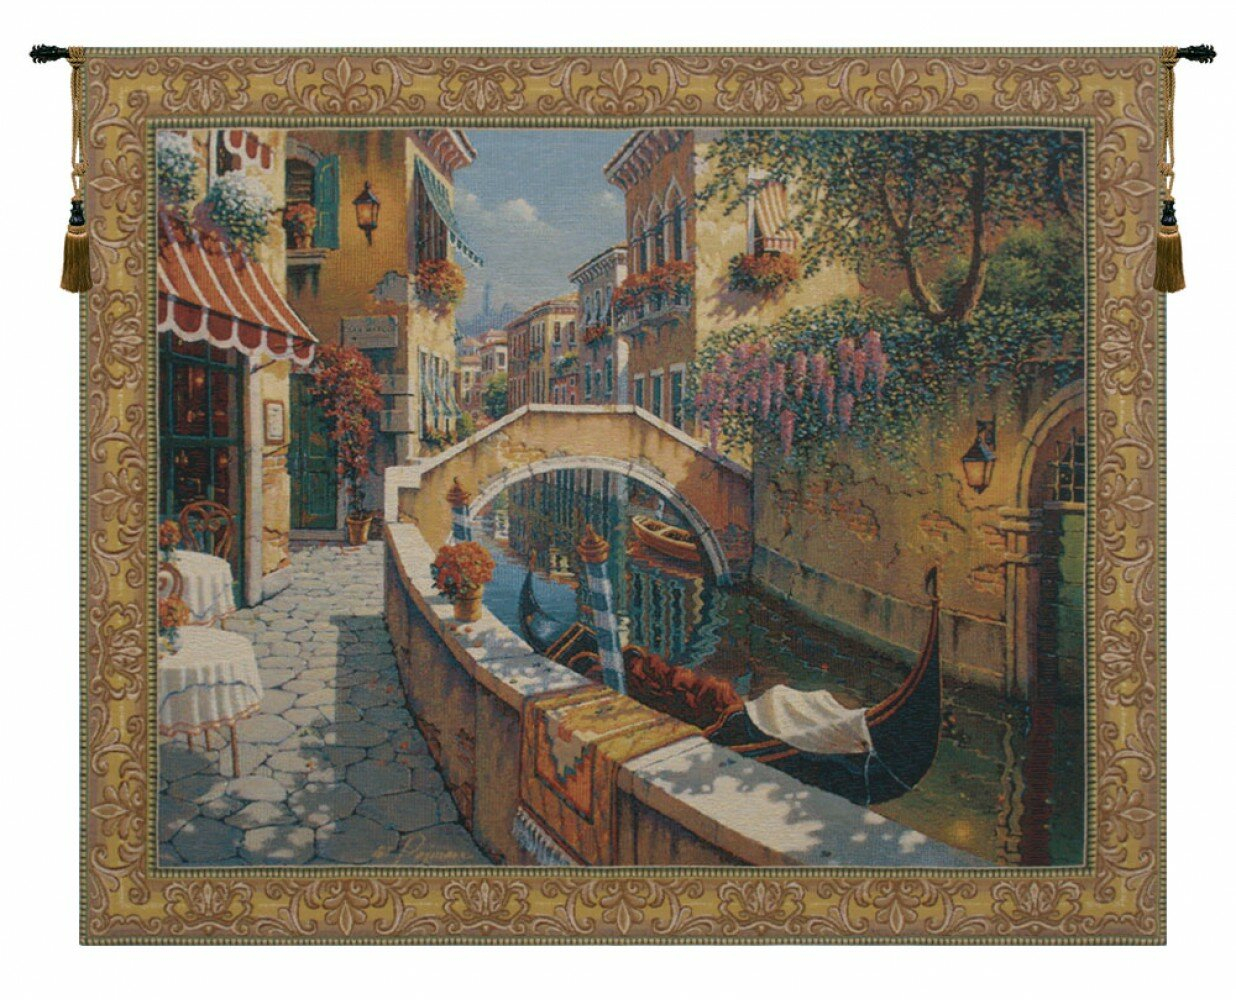 Passage To San Marcorobert Pejman Tapestry Intended For Current Blended Fabric Morning Reflections By Robert Pejman Flanders Tapestries (View 2 of 8)